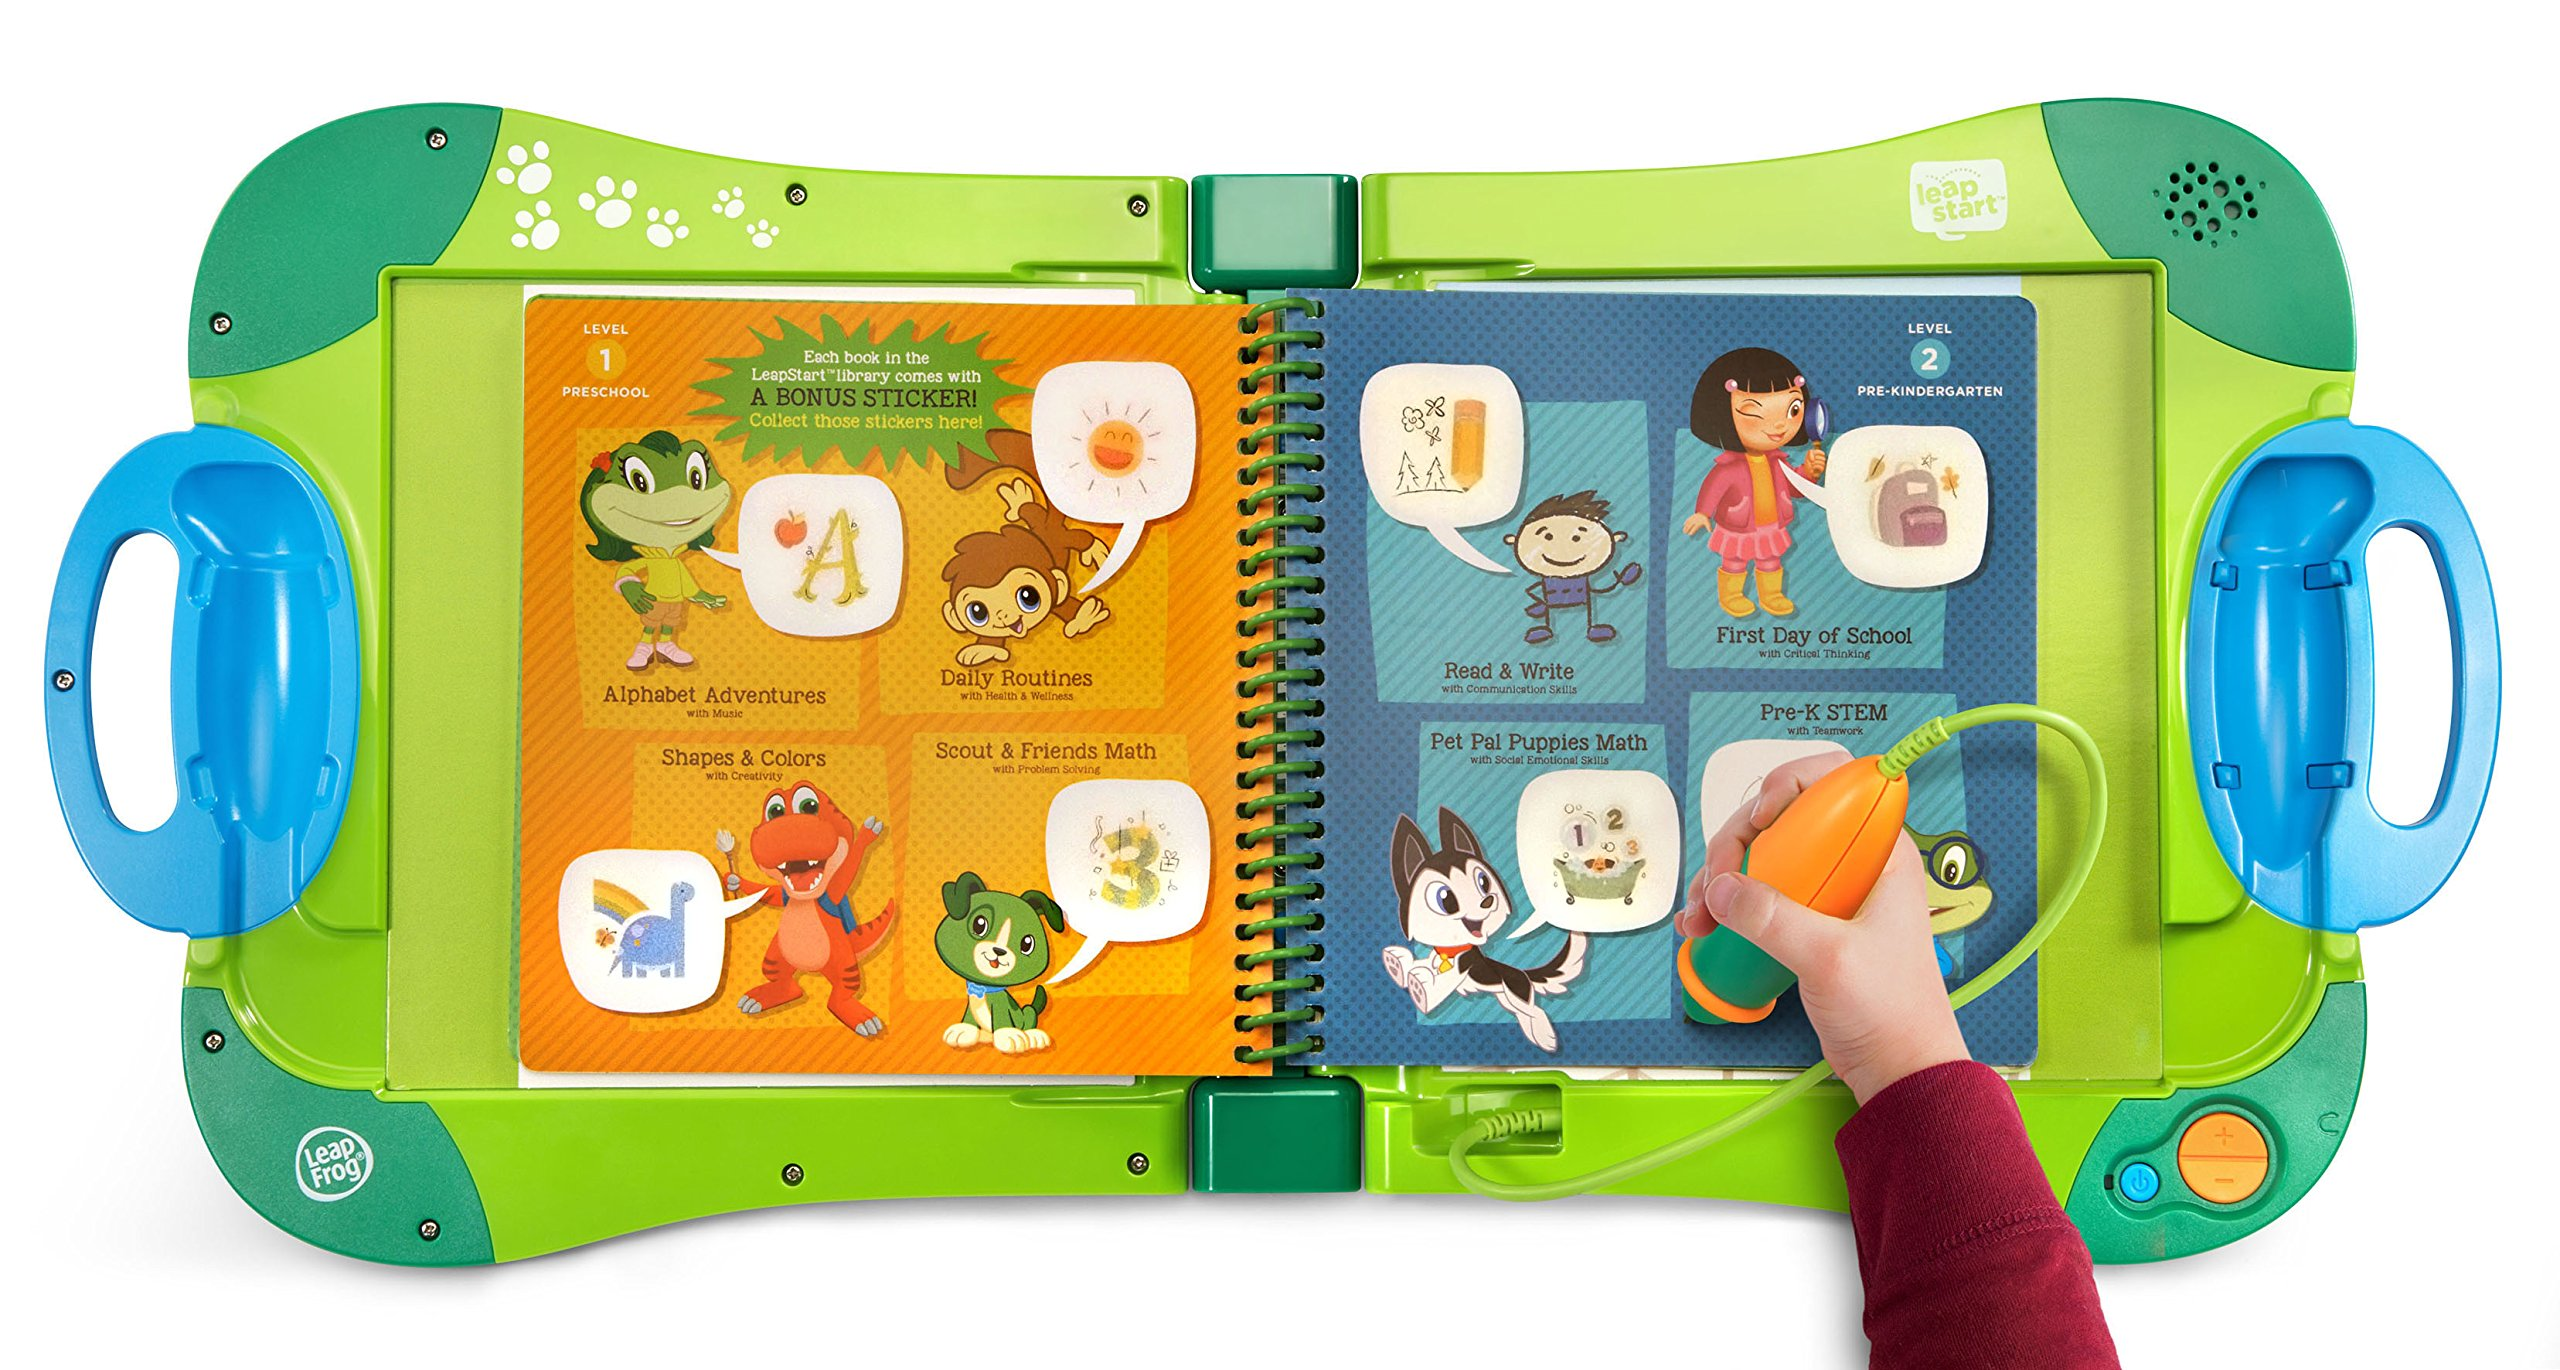 Leapfrog Leapstart Level 1 Preschool Activity Book Bundle